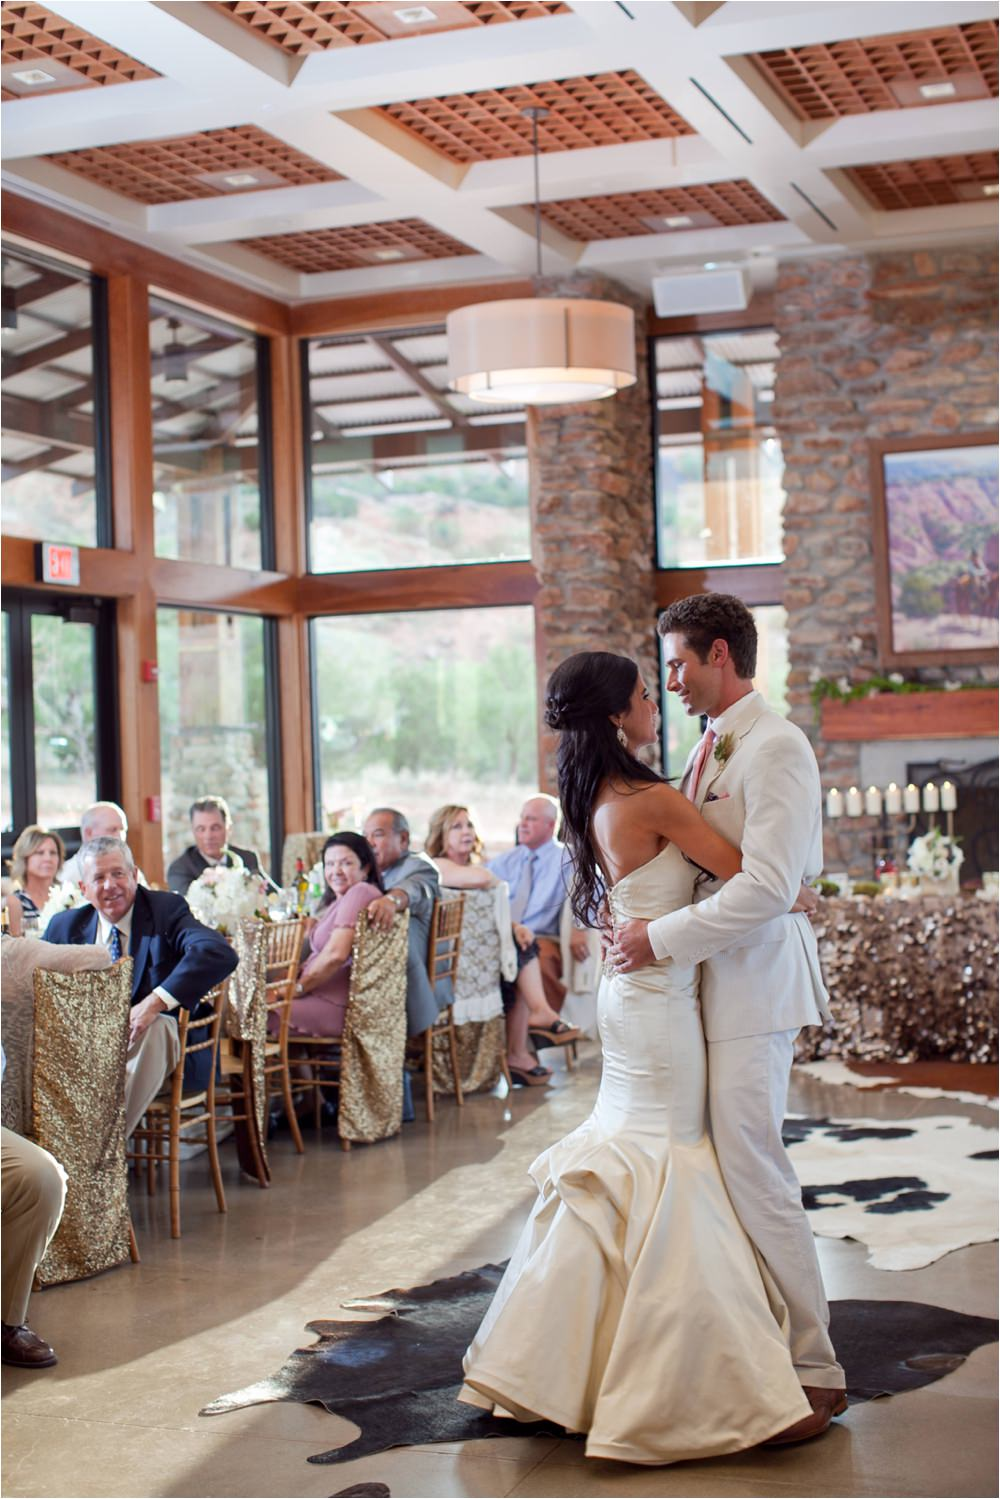 Palo Duro Canyon wedding by cristy cross